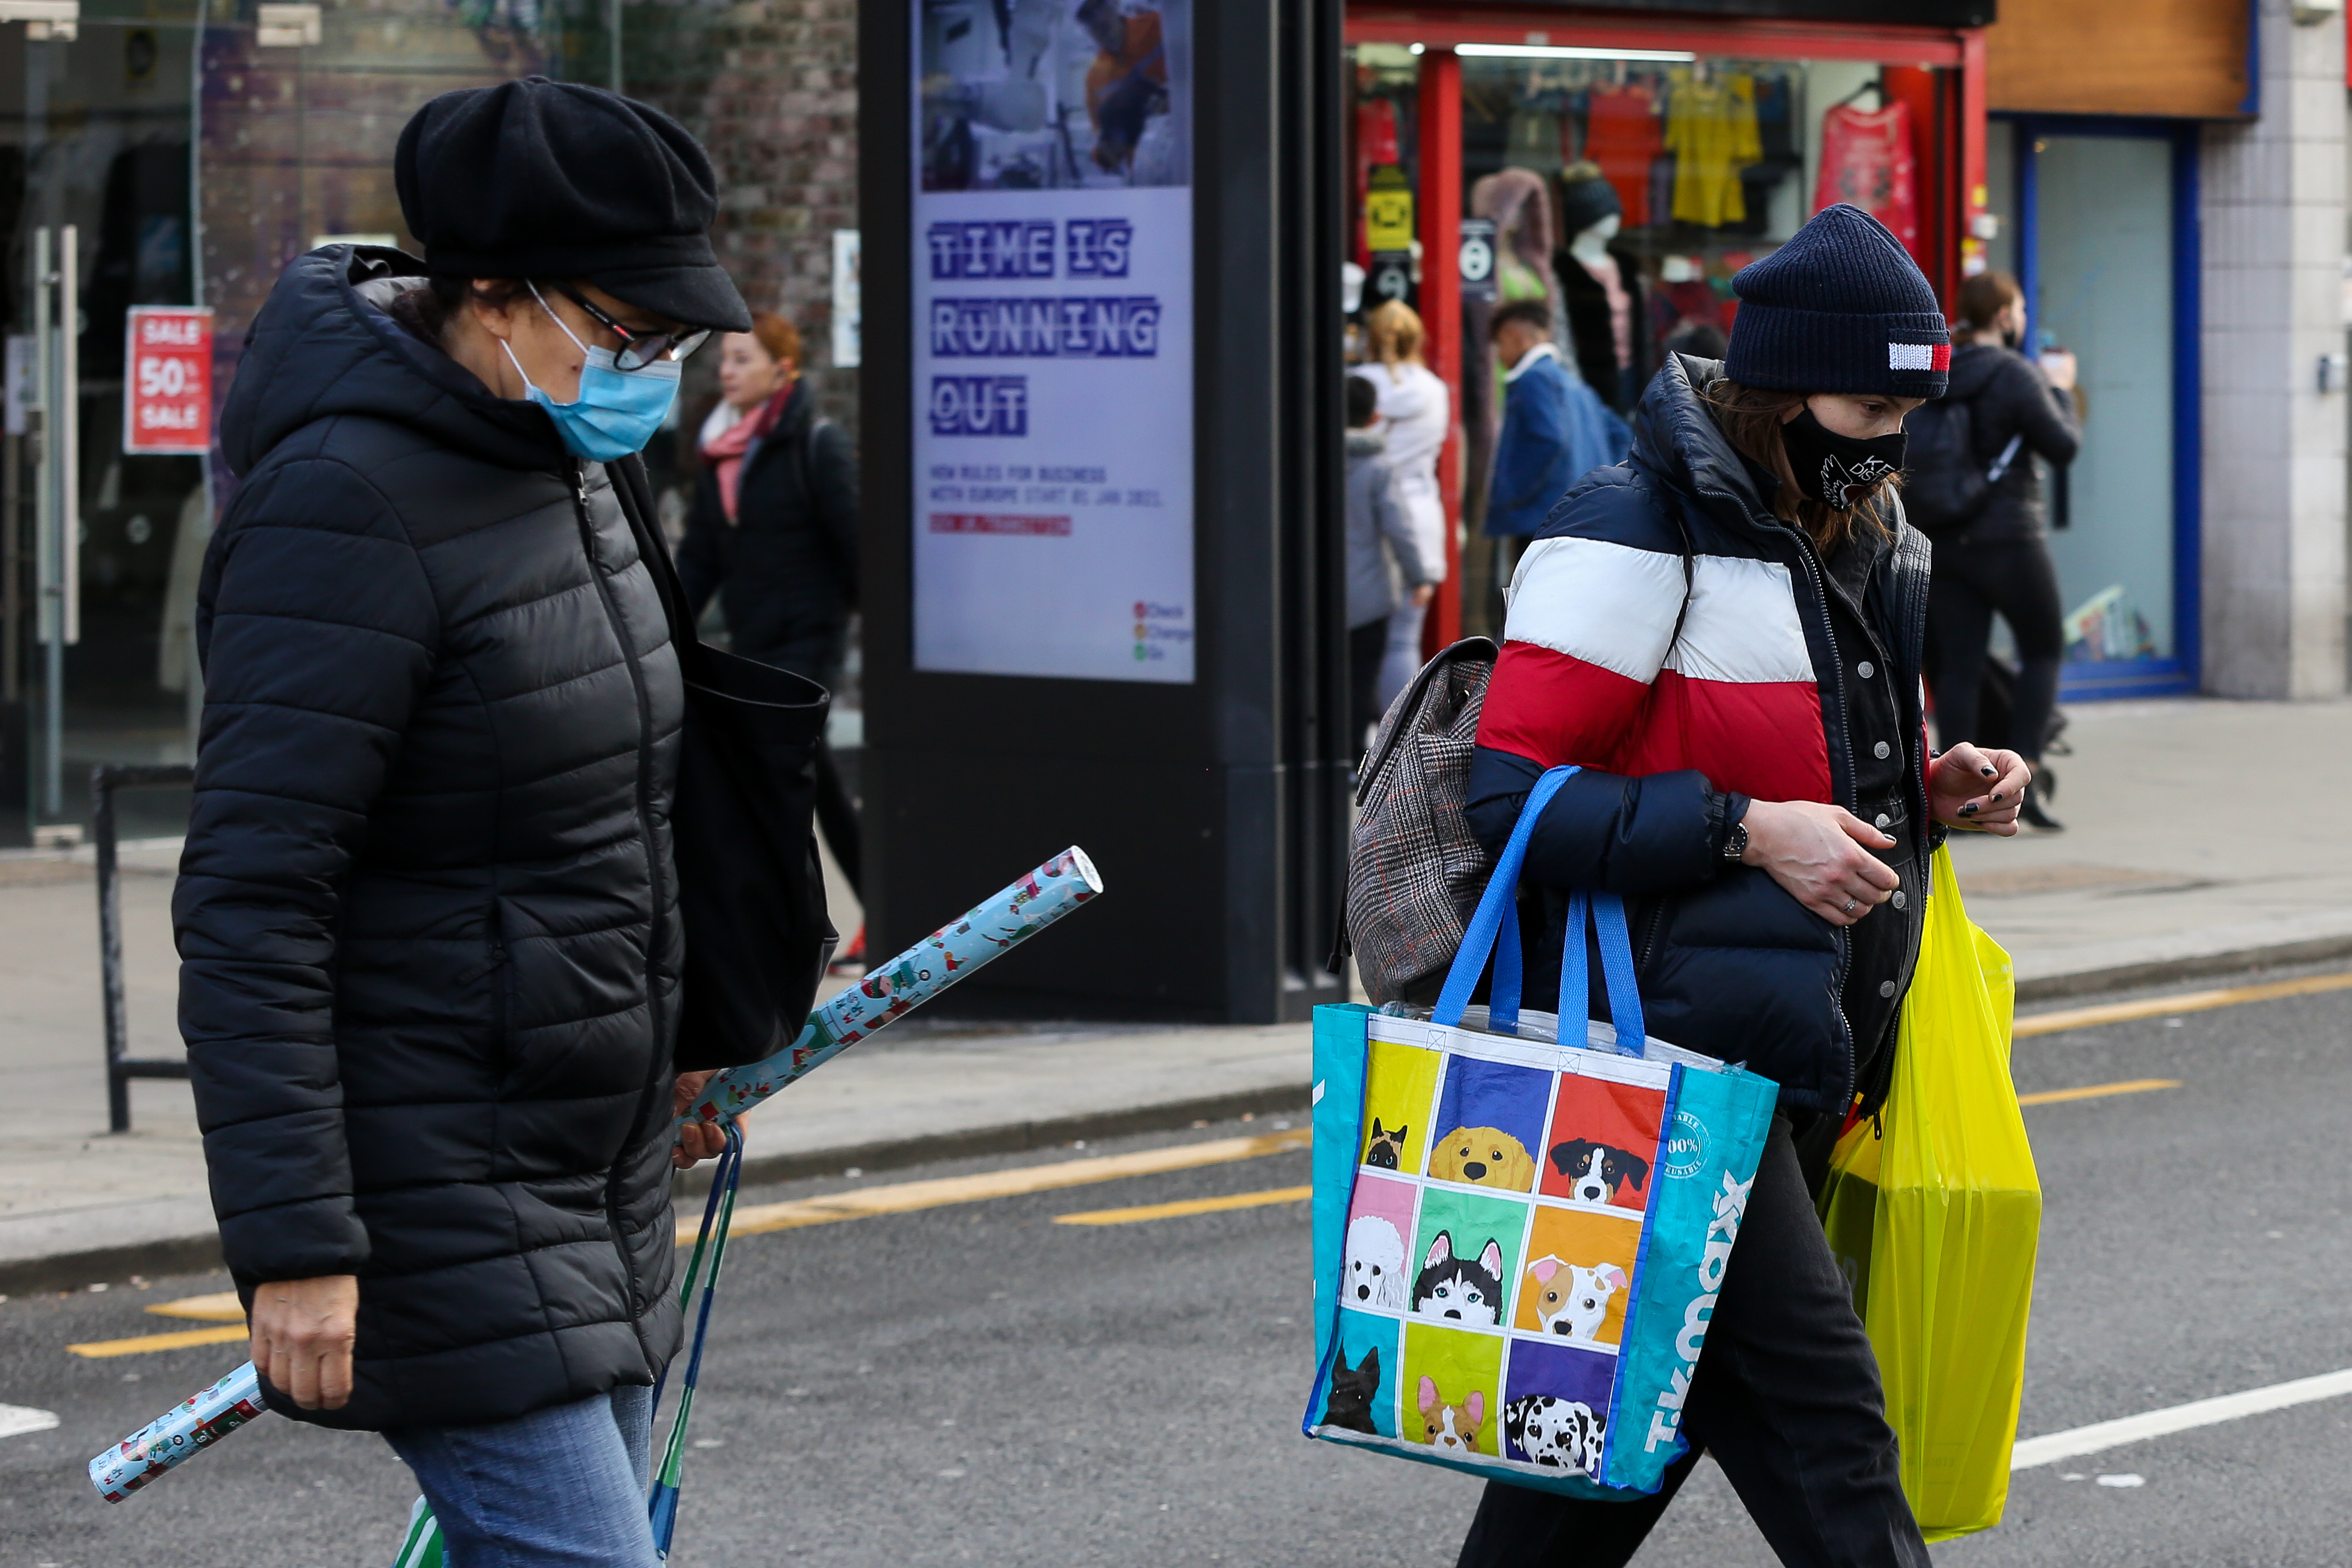 Shoppers wearing face masks walk on the street. Prime Minister Boris Johnson announced on Saturday 19 December, that London and South East of England will move into Tier four restrictions and asked people to 'stay at home'. (Photo by Dinendra Haria / SOPA Images/Sipa USA)